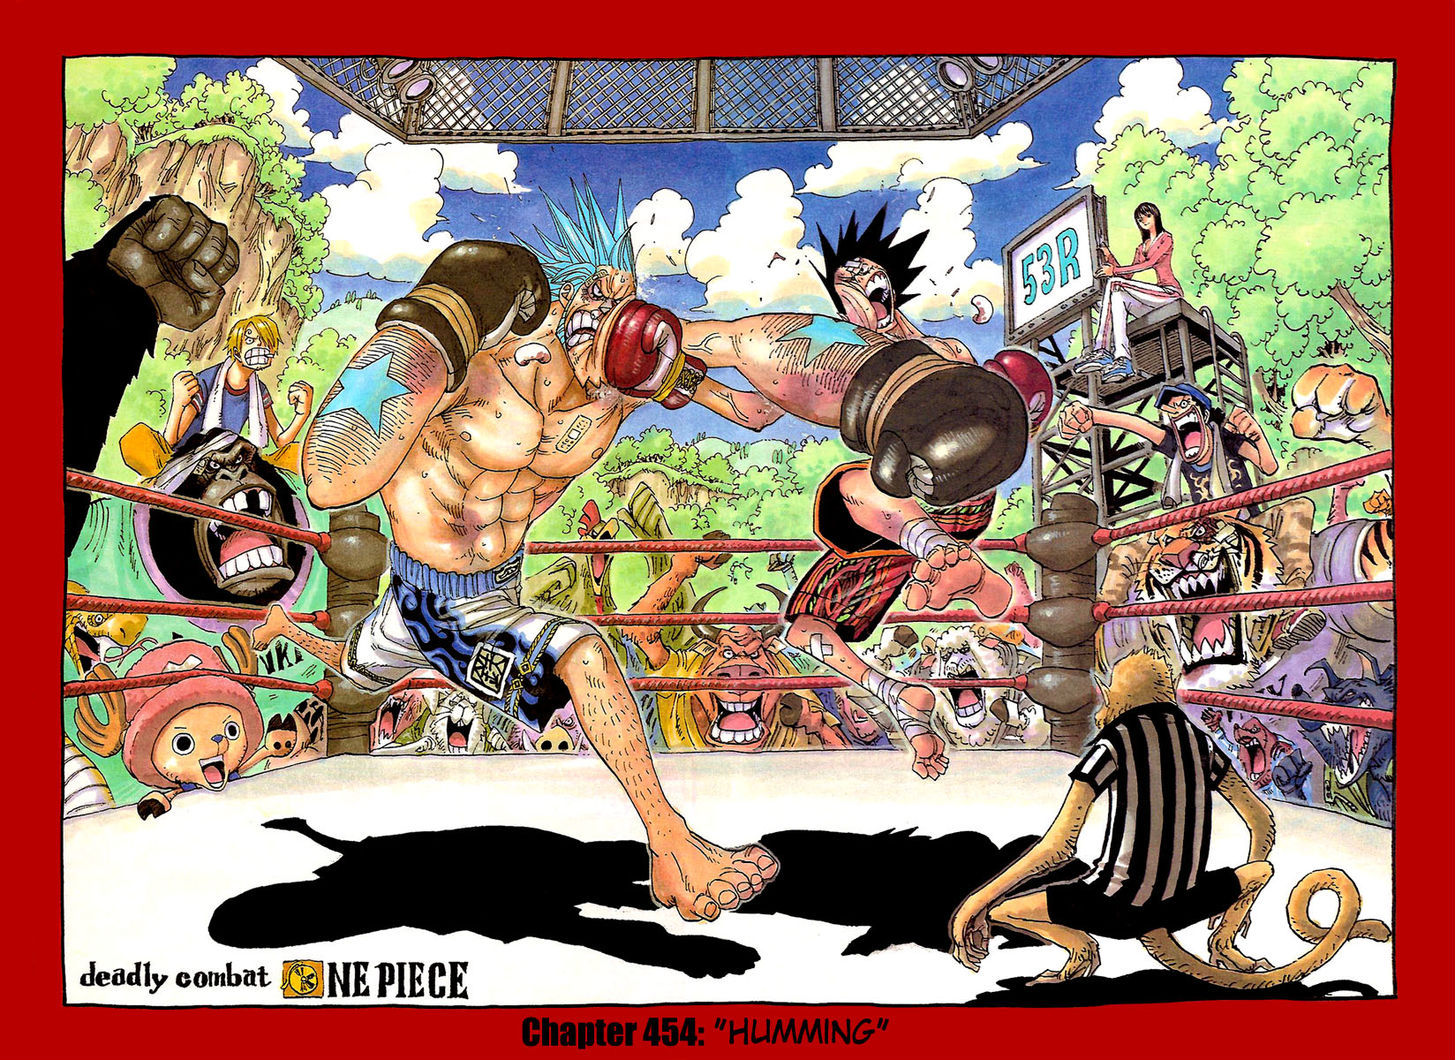 https://im.nineanime.com/comics/pic9/32/96/2802/OnePiece4540324.jpg Page 1